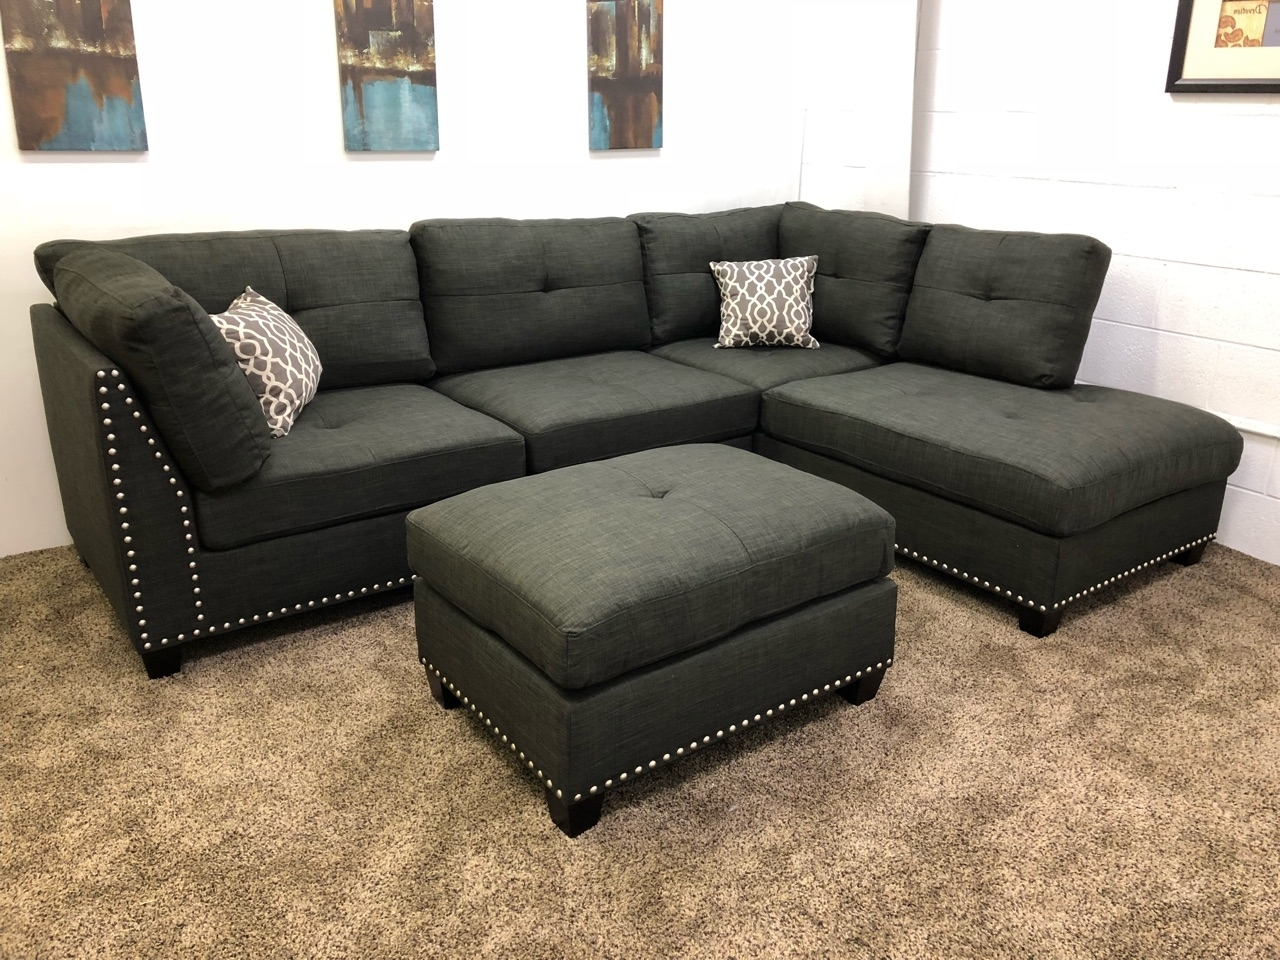 Sectional Sofas With Chaise Lounge And Ottoman In 2018 1 In Stock)#n753R  $250 Down  Black Linen Studded Linen Sectional (View 15 of 15)